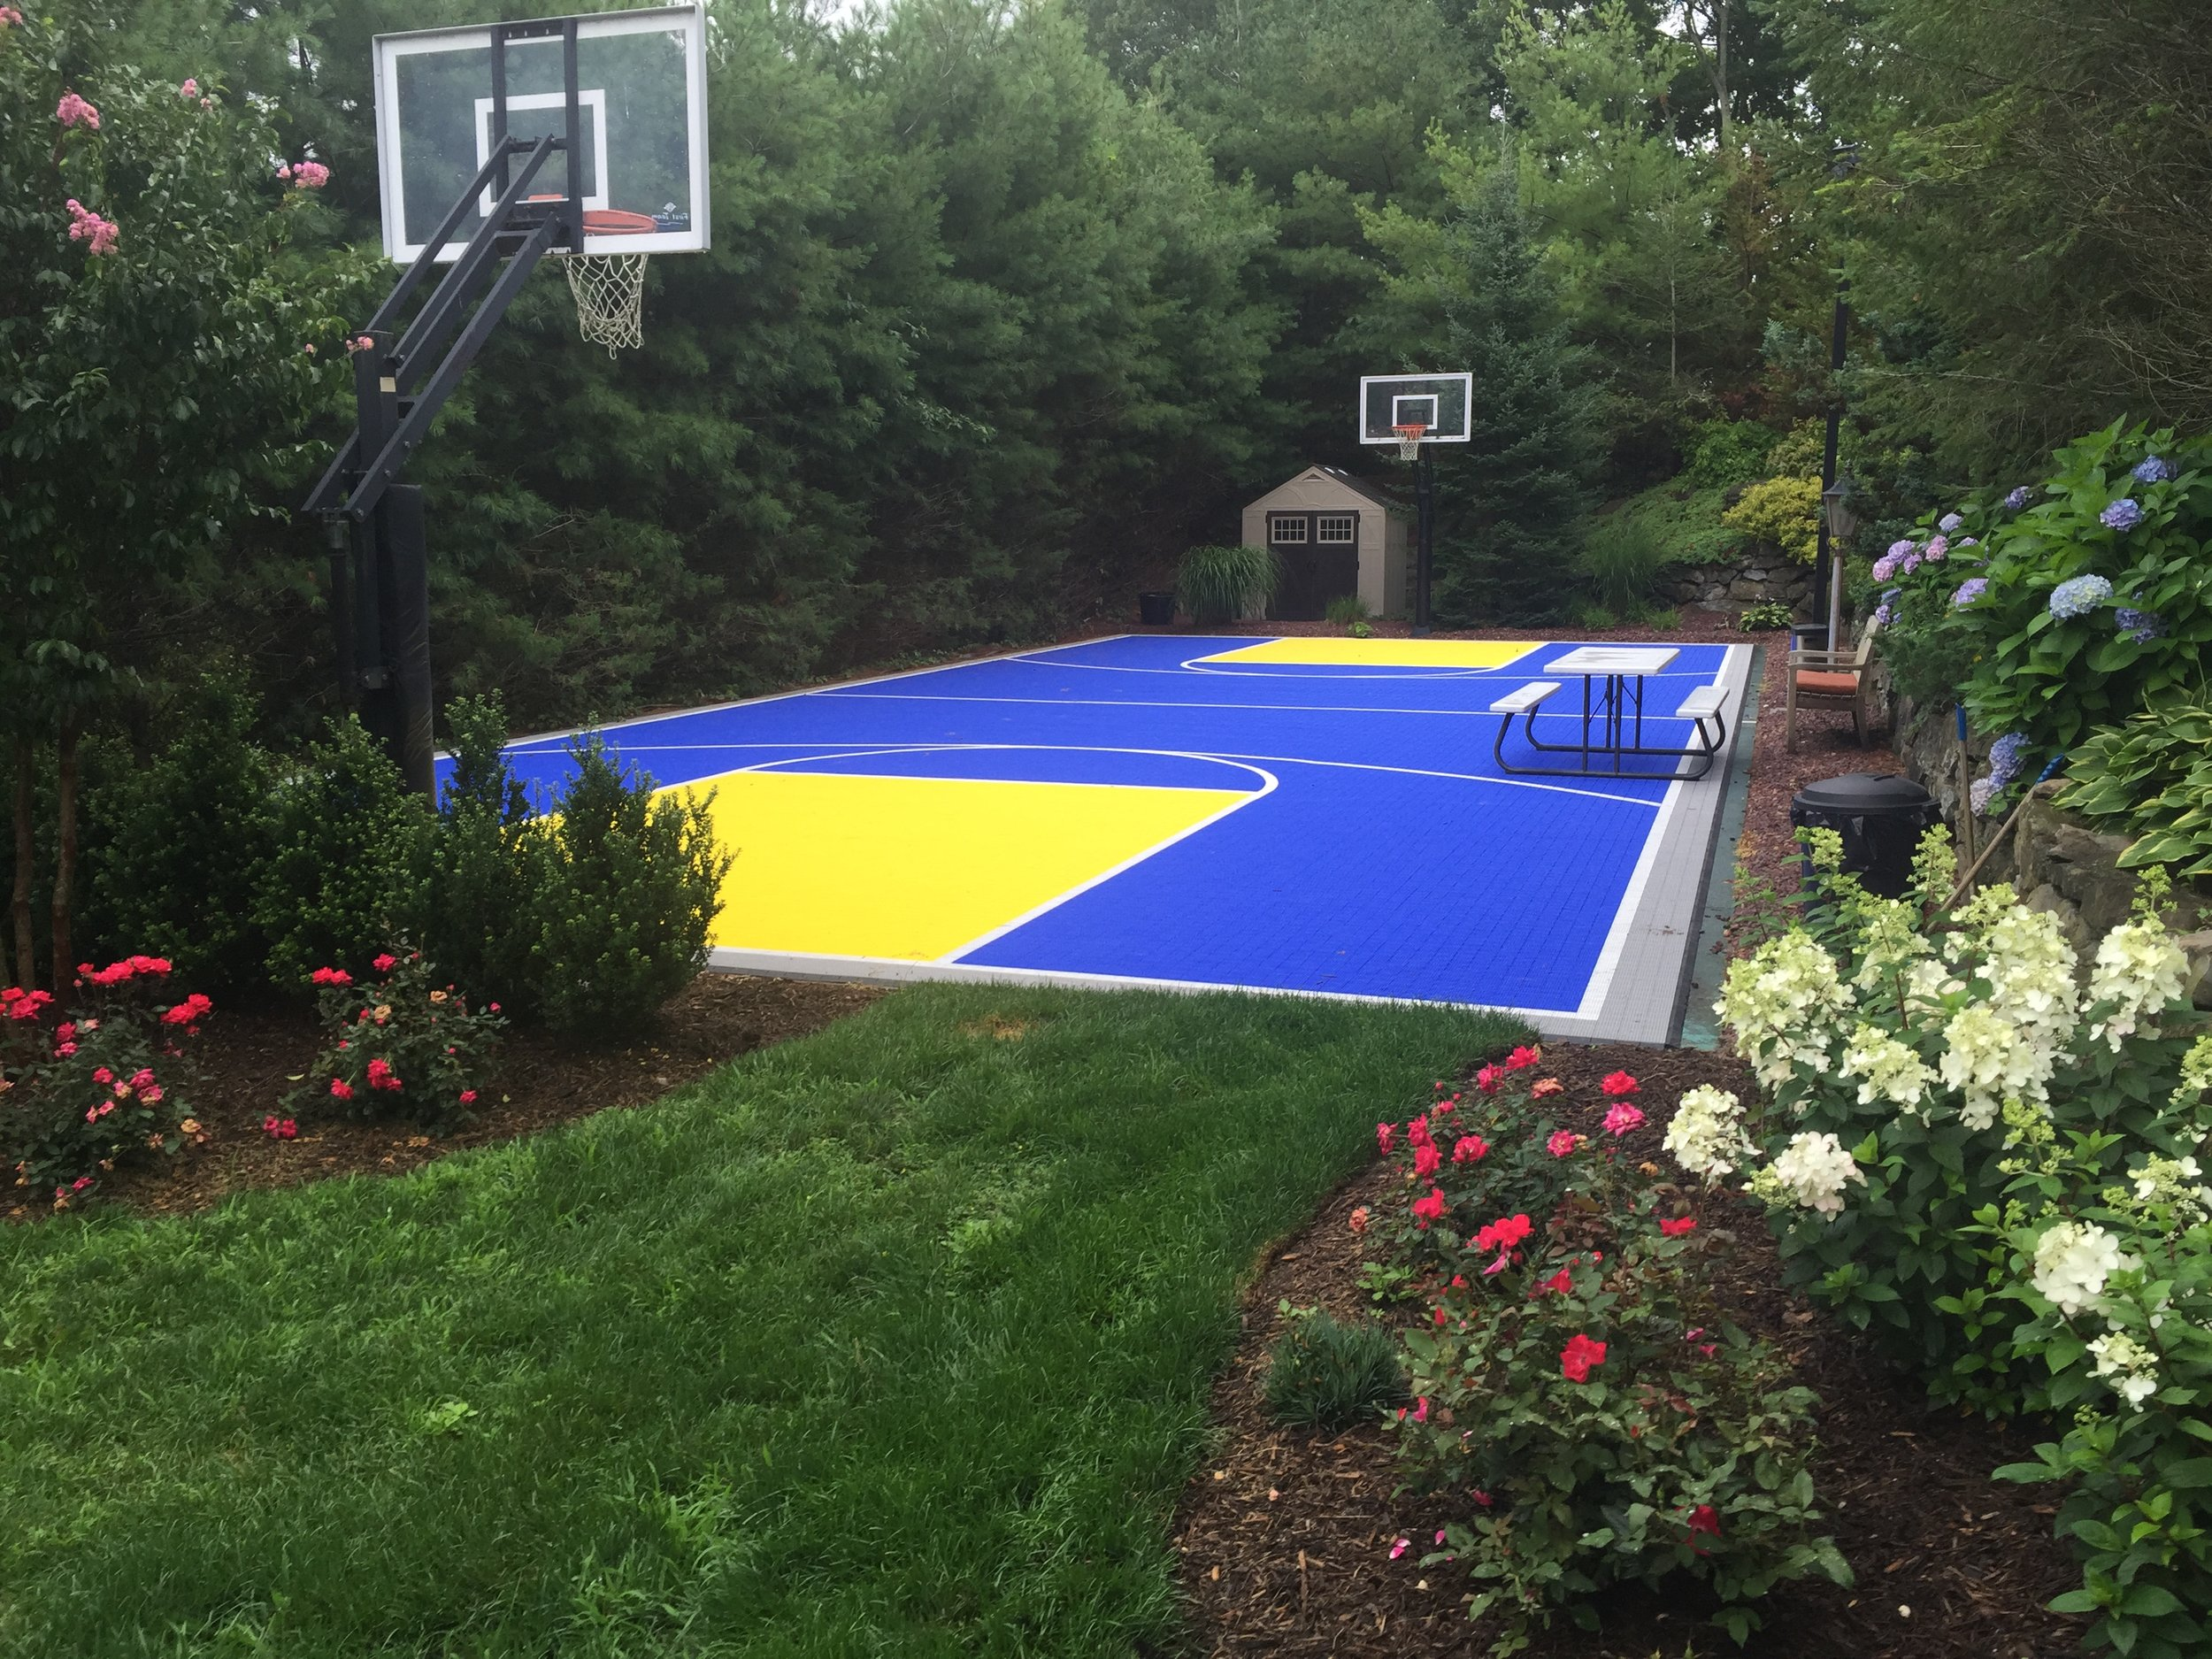 Professional basketball court design company in Long Island, NY